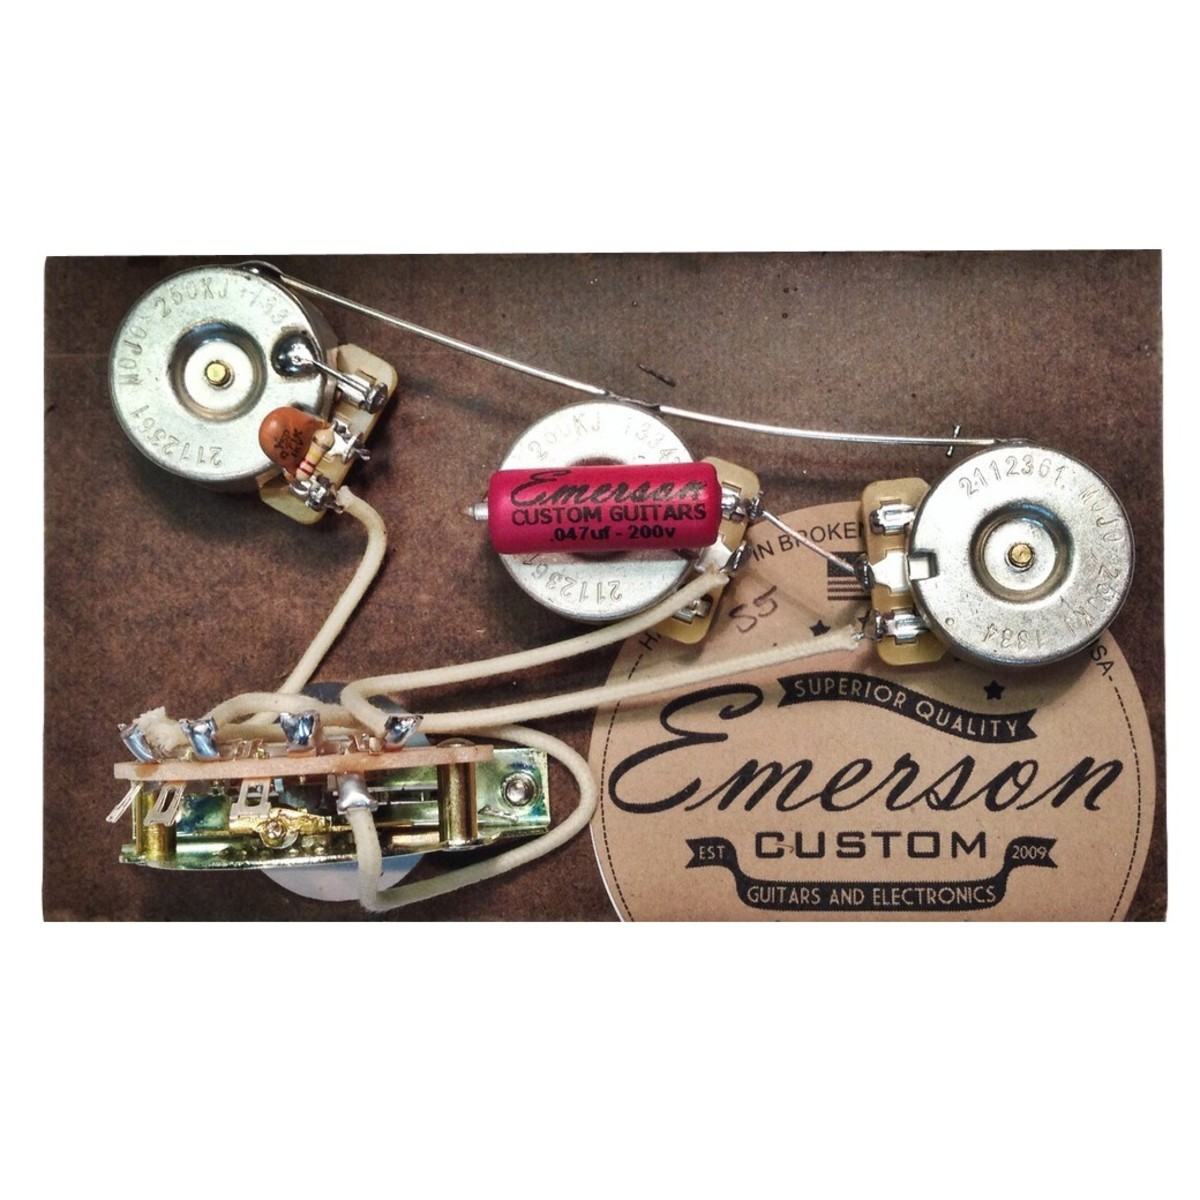 Emerson Custom 5 Way Strat Prewired Kit 500k At Gear4music Electric Circuit Diagram For Kids Thunderbolt